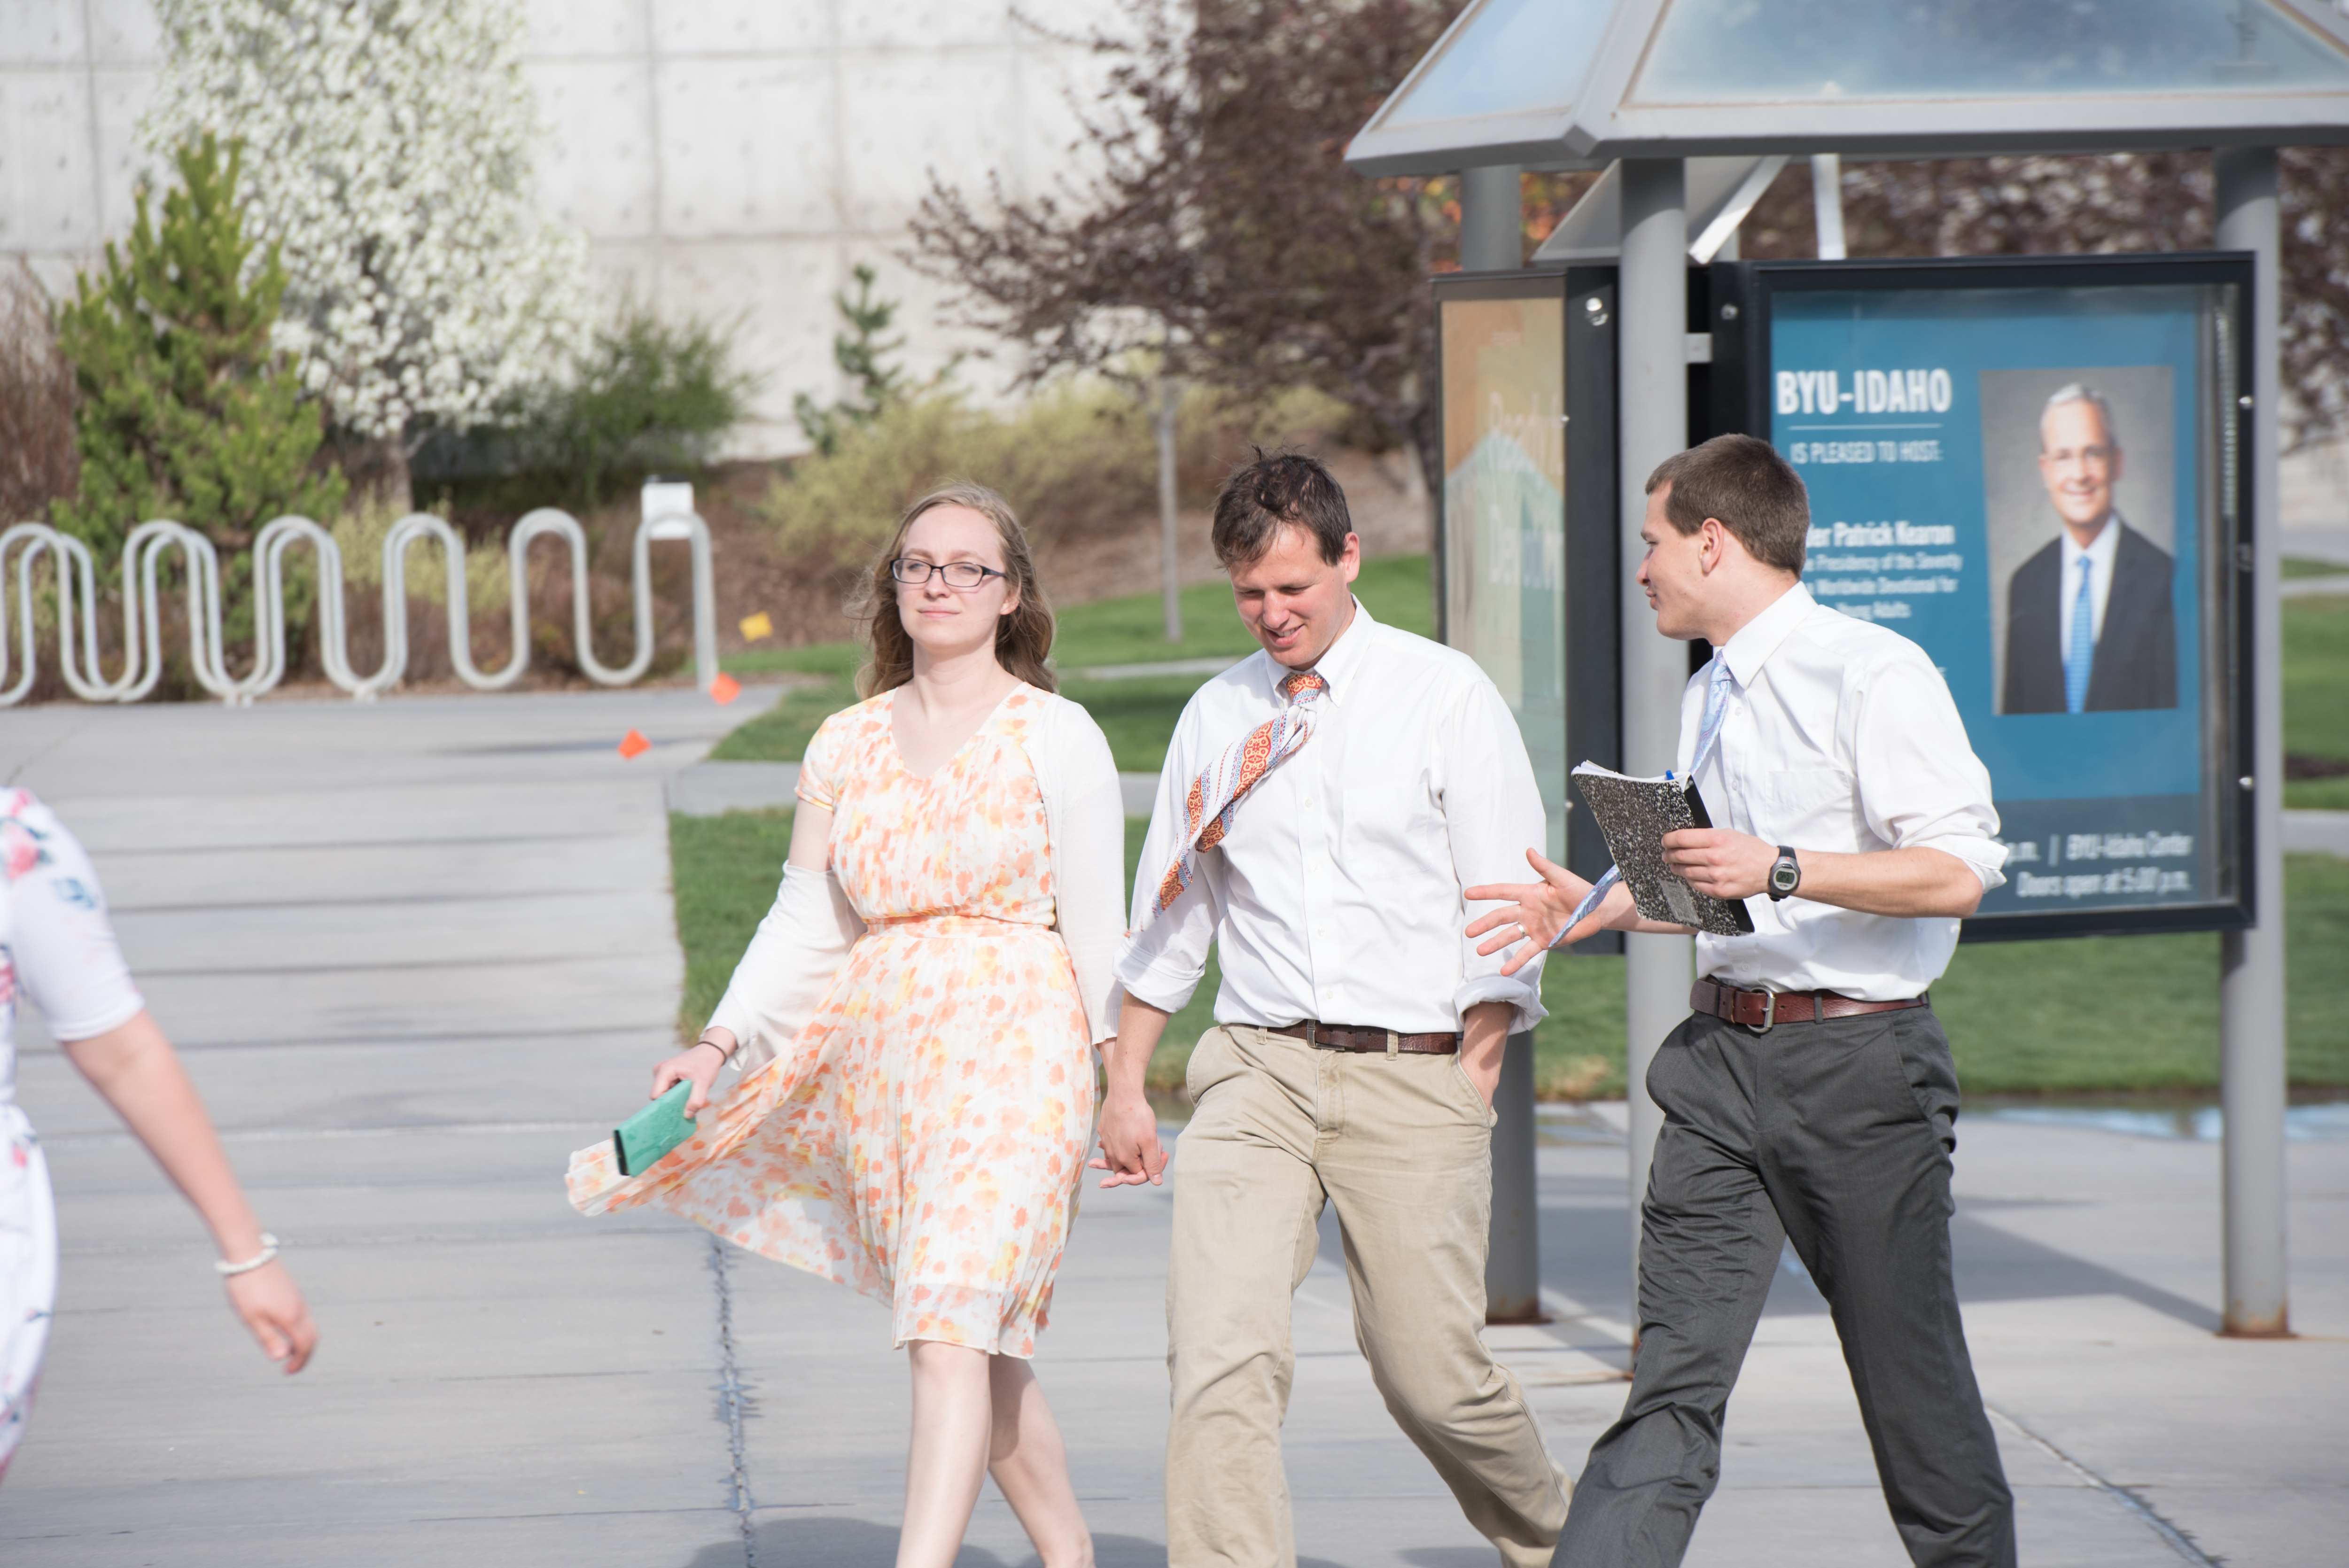 Young adults walk to the BYU-Idaho Center in Rexburg, Idaho, to attend the Worldwide Devotional for Young Adults on May 6, 2018.